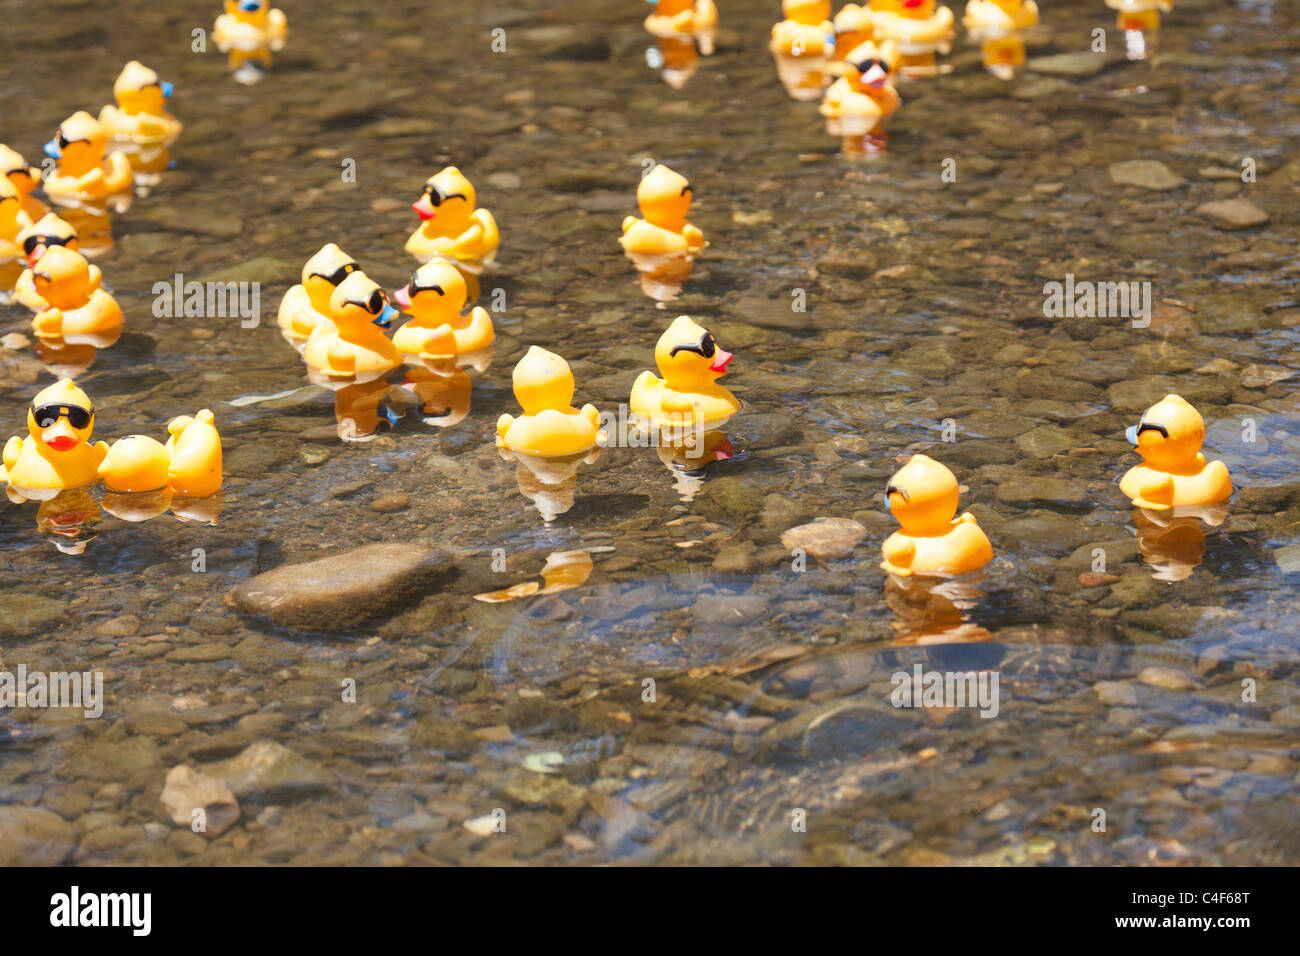 LOS GATOS, CA, USA - JUNE 12: The rubber duckies are kicking off ...